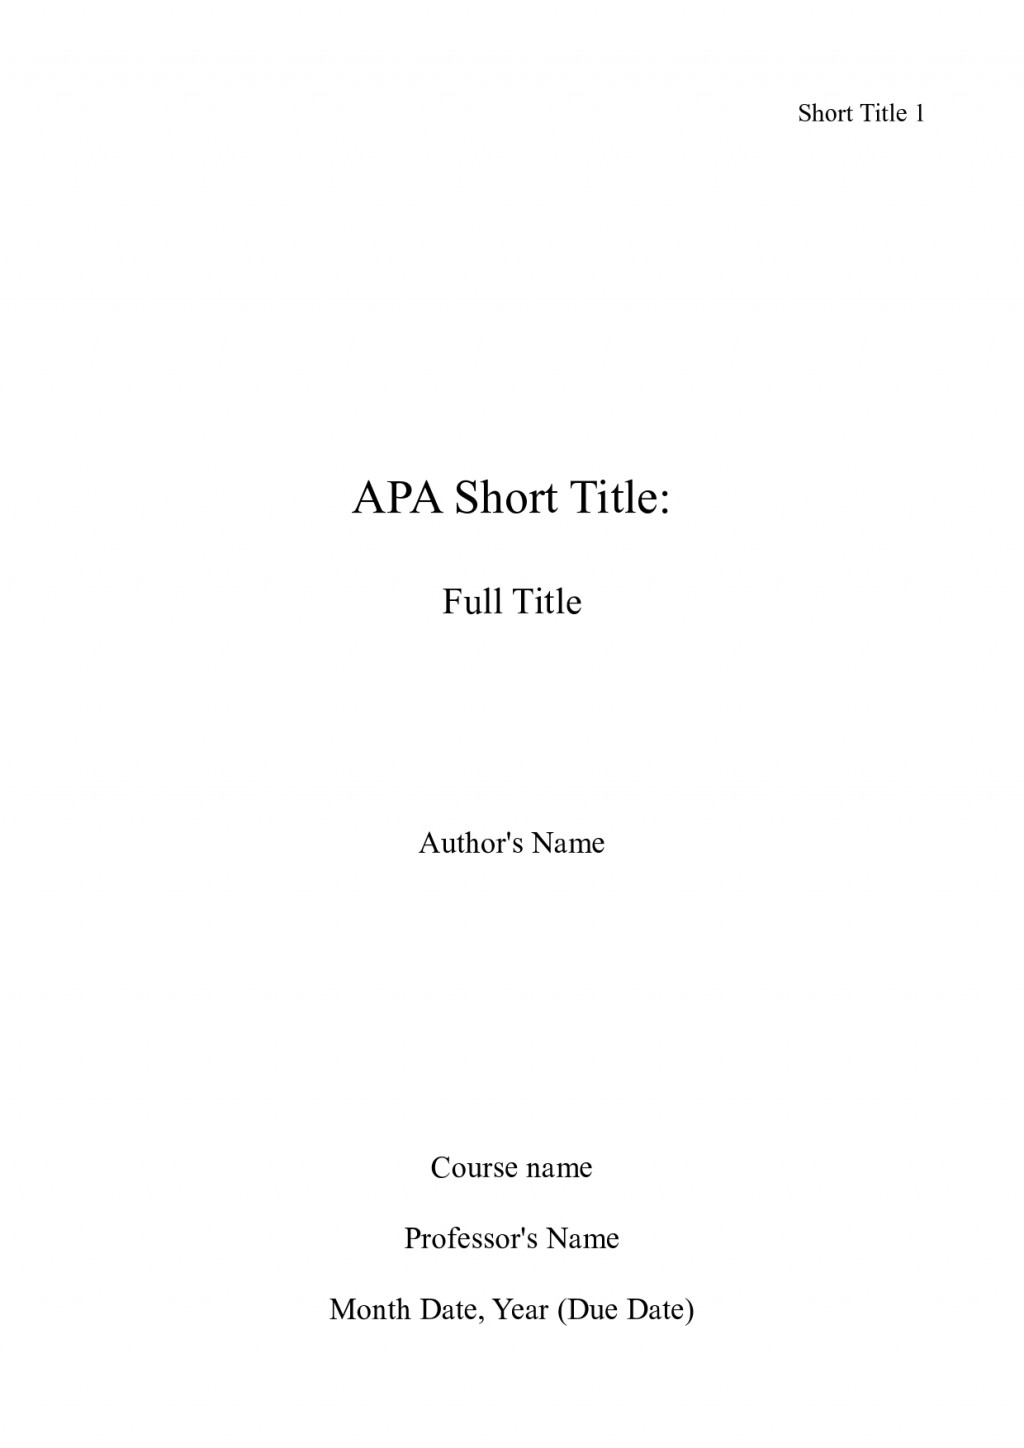 006 Apa Title Page Sample Research Paper Covermat Astounding Cover Format For Proper Layout A Example Large